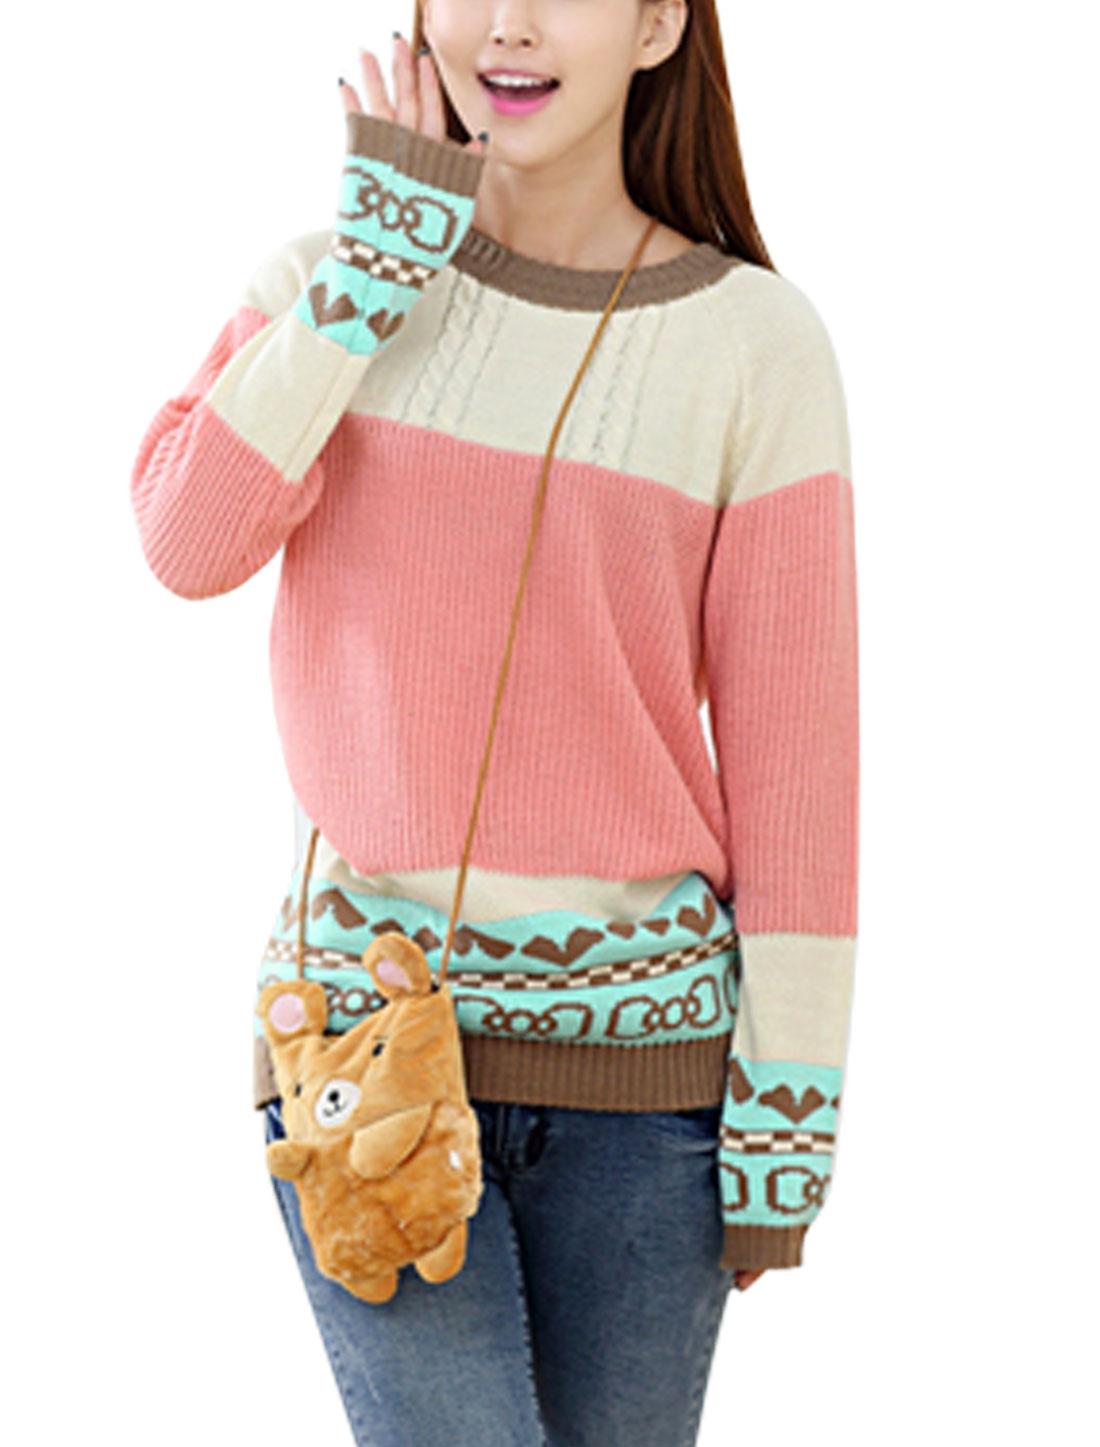 Women Hearts Stripes Pattern Raglan Sleeve Sweater Pink Beige XS